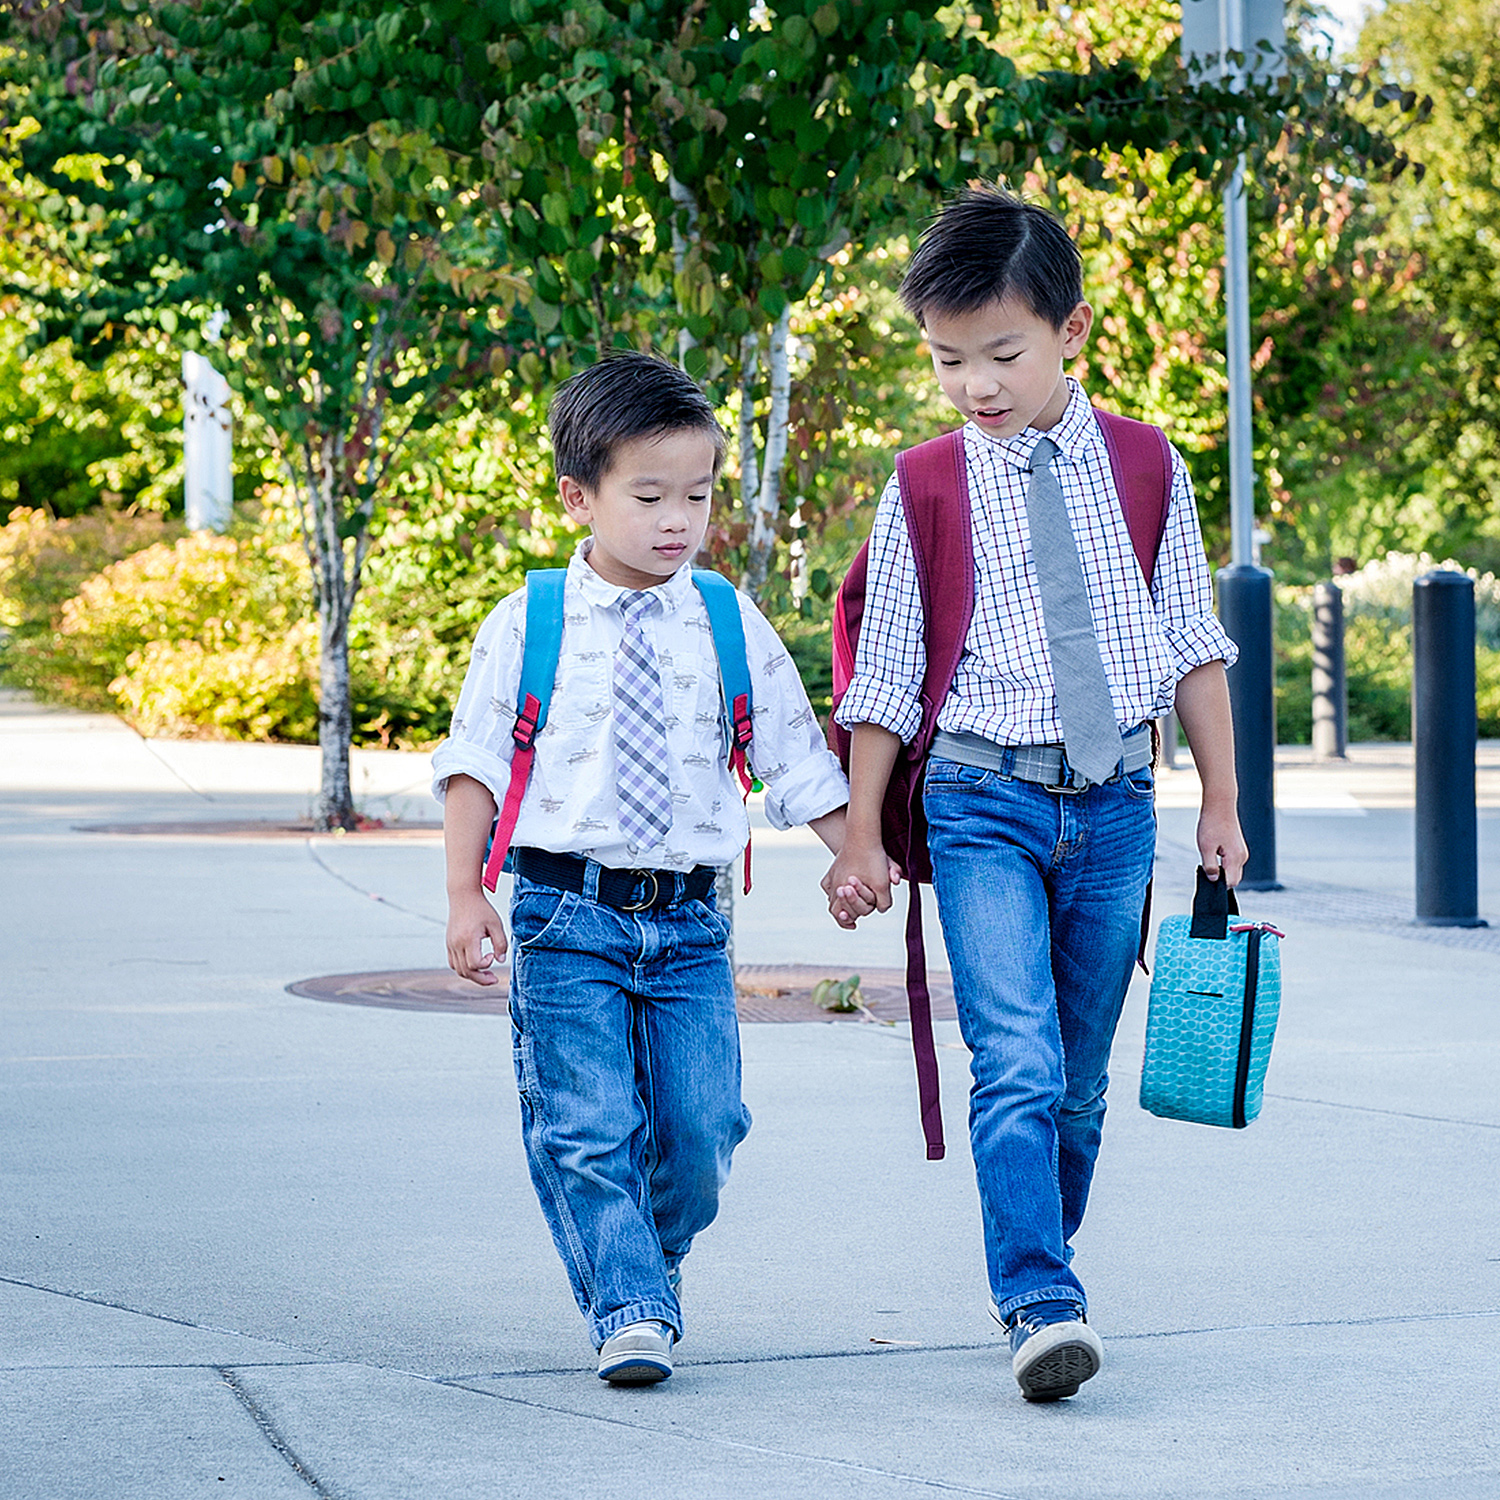 Older brother holding little brother's hand, leading him down the street, both with backpacks